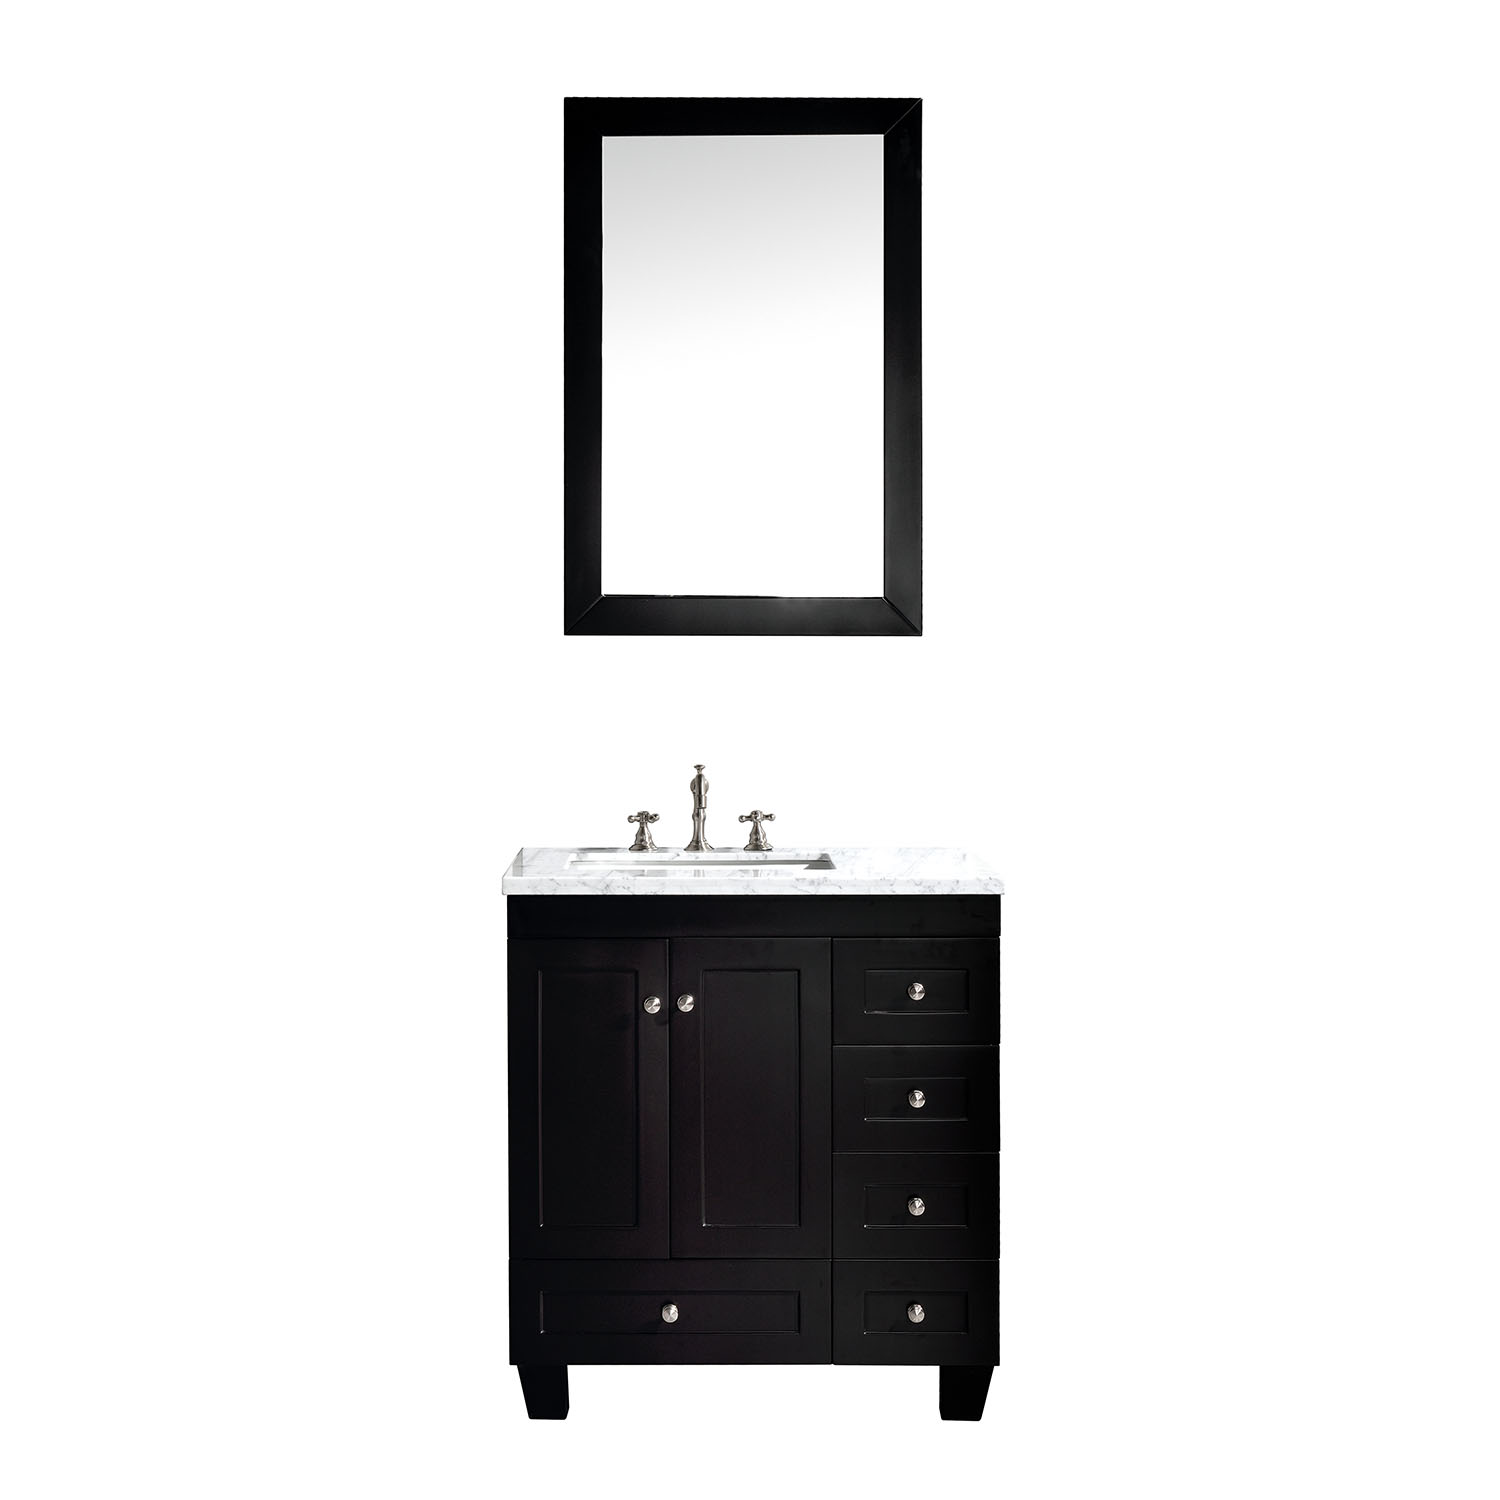 "EVVN69 30ES A Main - Eviva Acclaim C. 30"" Transitional Espresso Bathroom Vanity with white carrera marble counter-top"